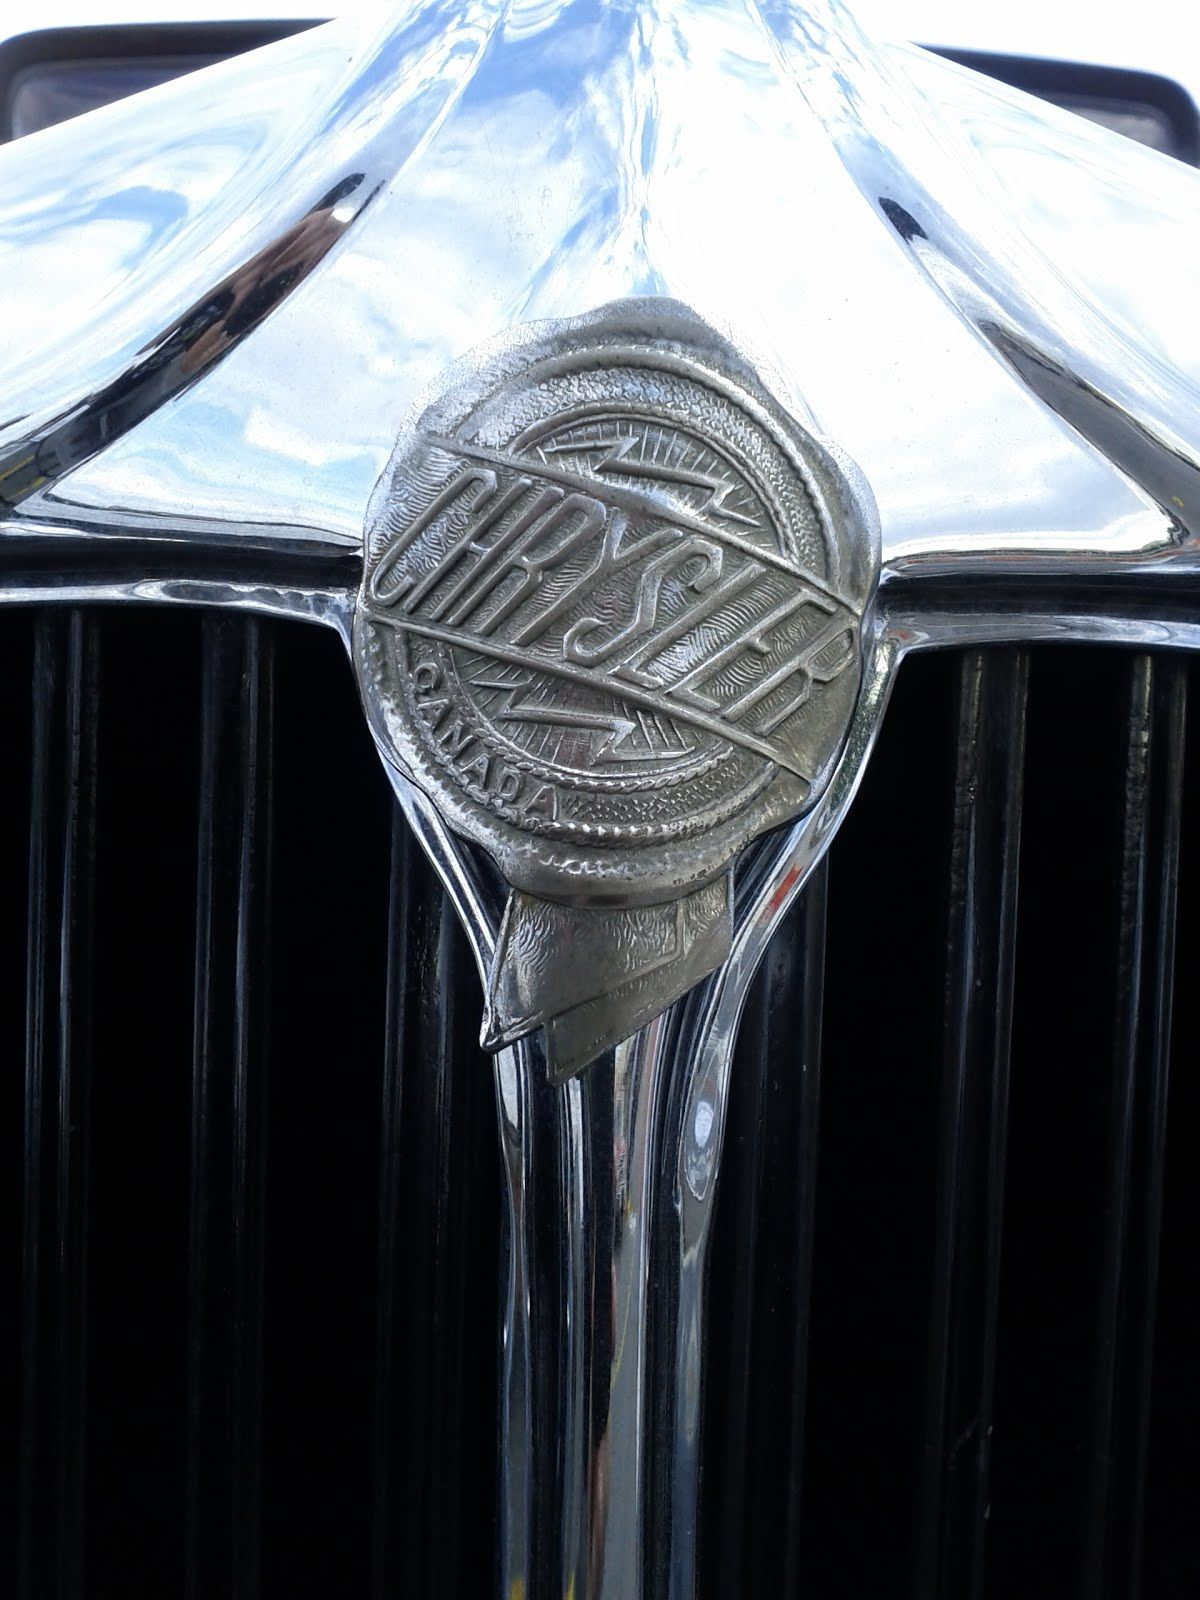 Grill brand mark from a Canadian-built 1930's Chrysler.